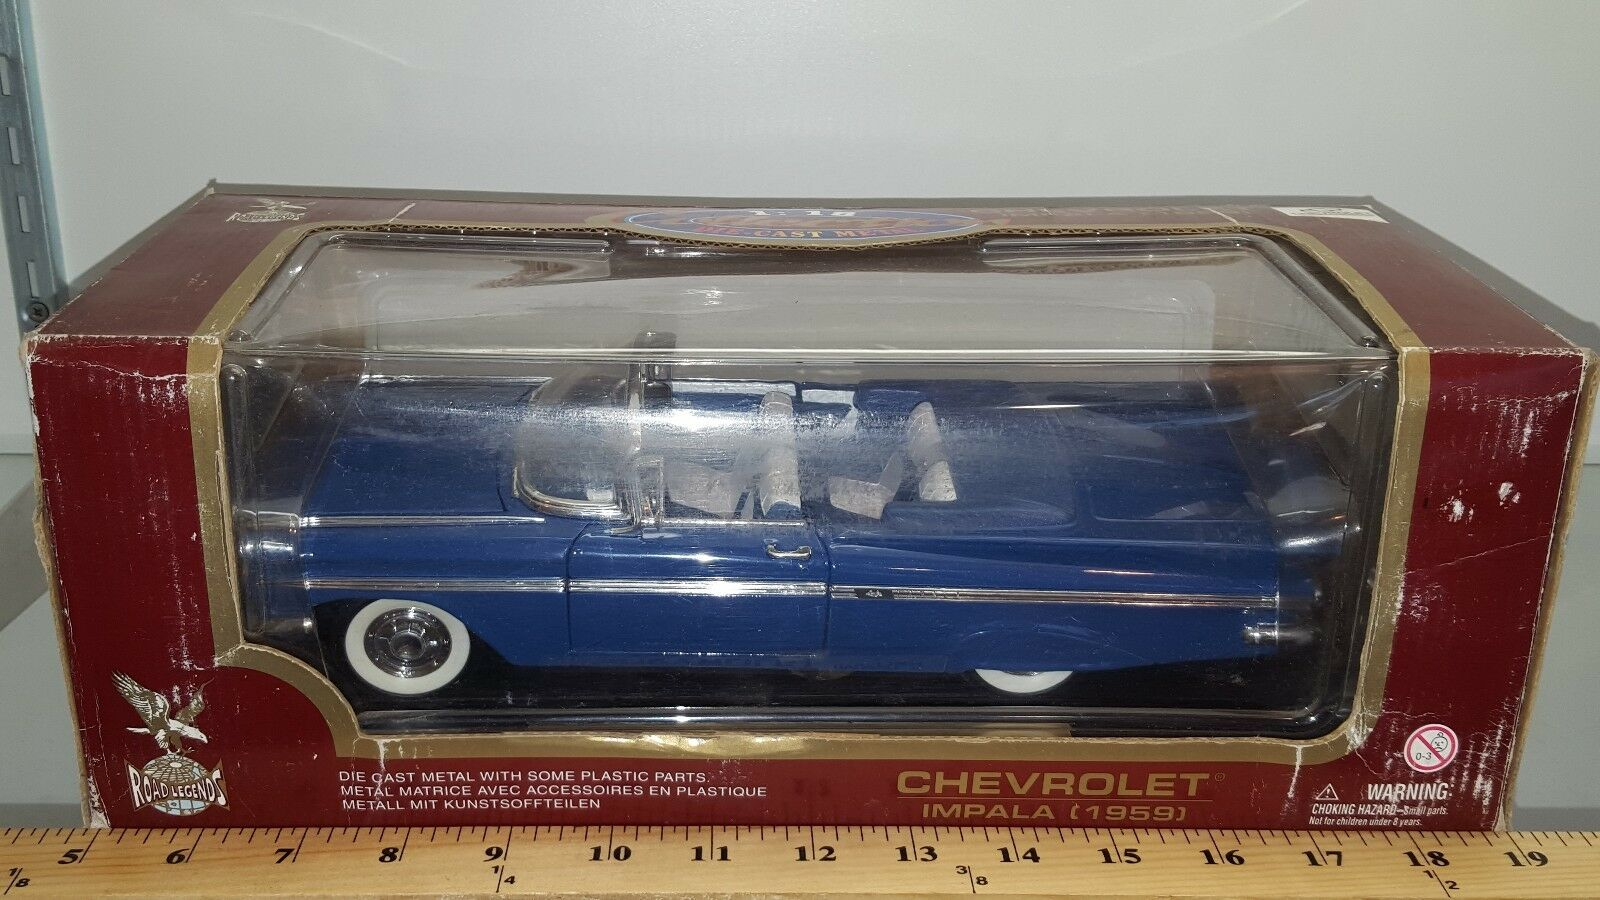 1 18 YATMING ROAD ROAD ROAD LEGENDS 1959 CHEVROLET IMPALA CONgreenIBLE PERIWINKLE gd 45635e